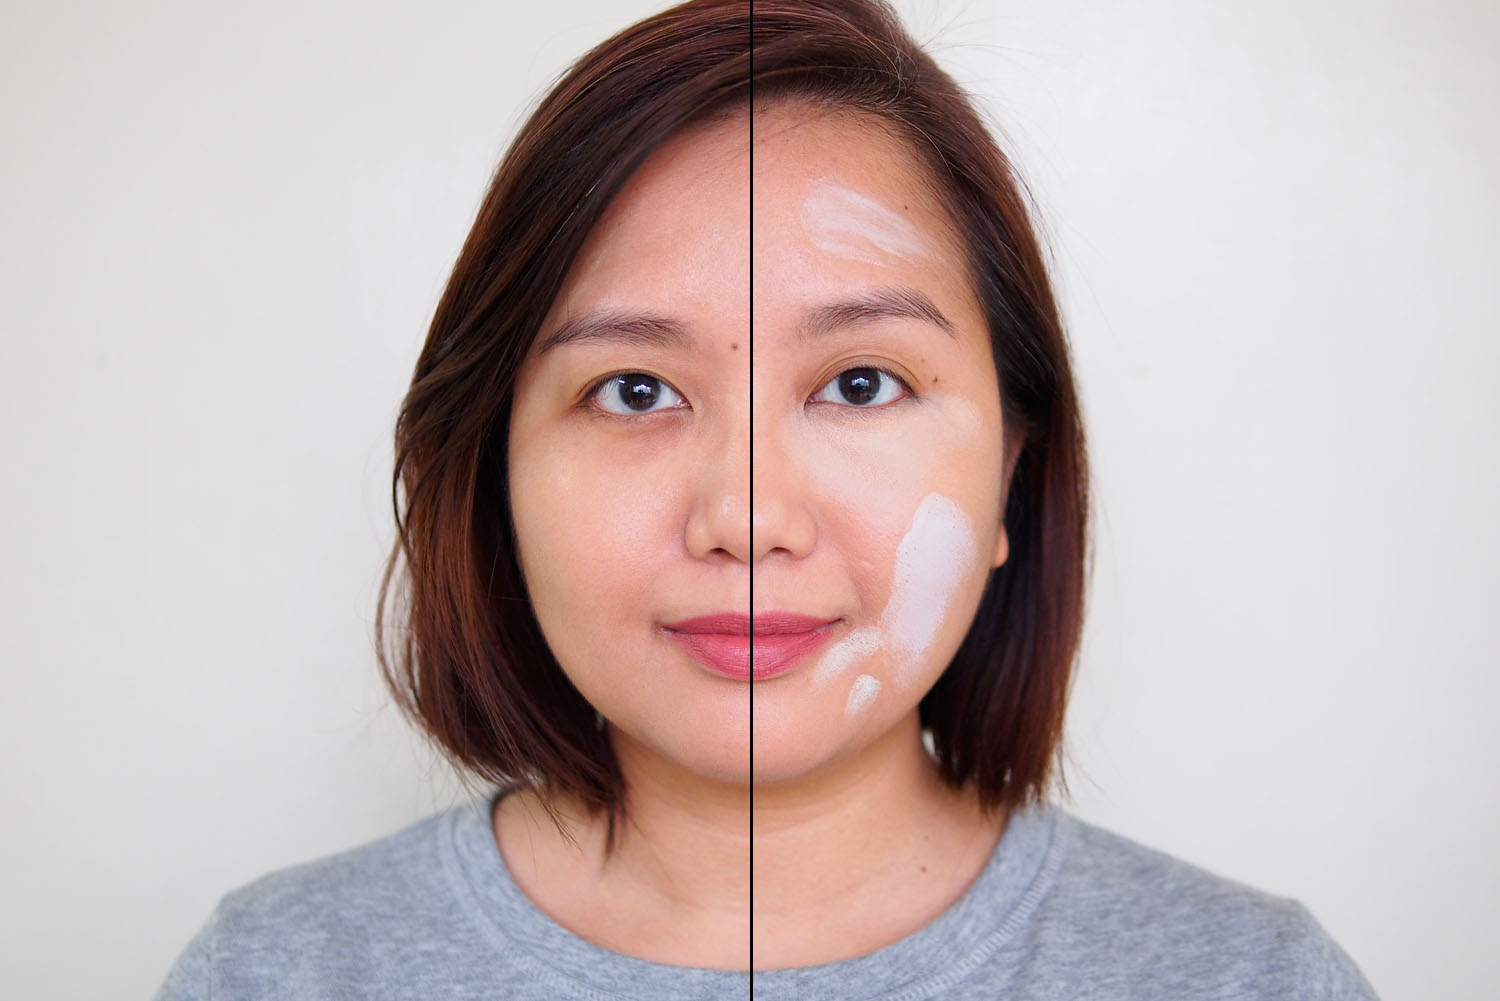 Left: foundation only, Right: unblended corrector